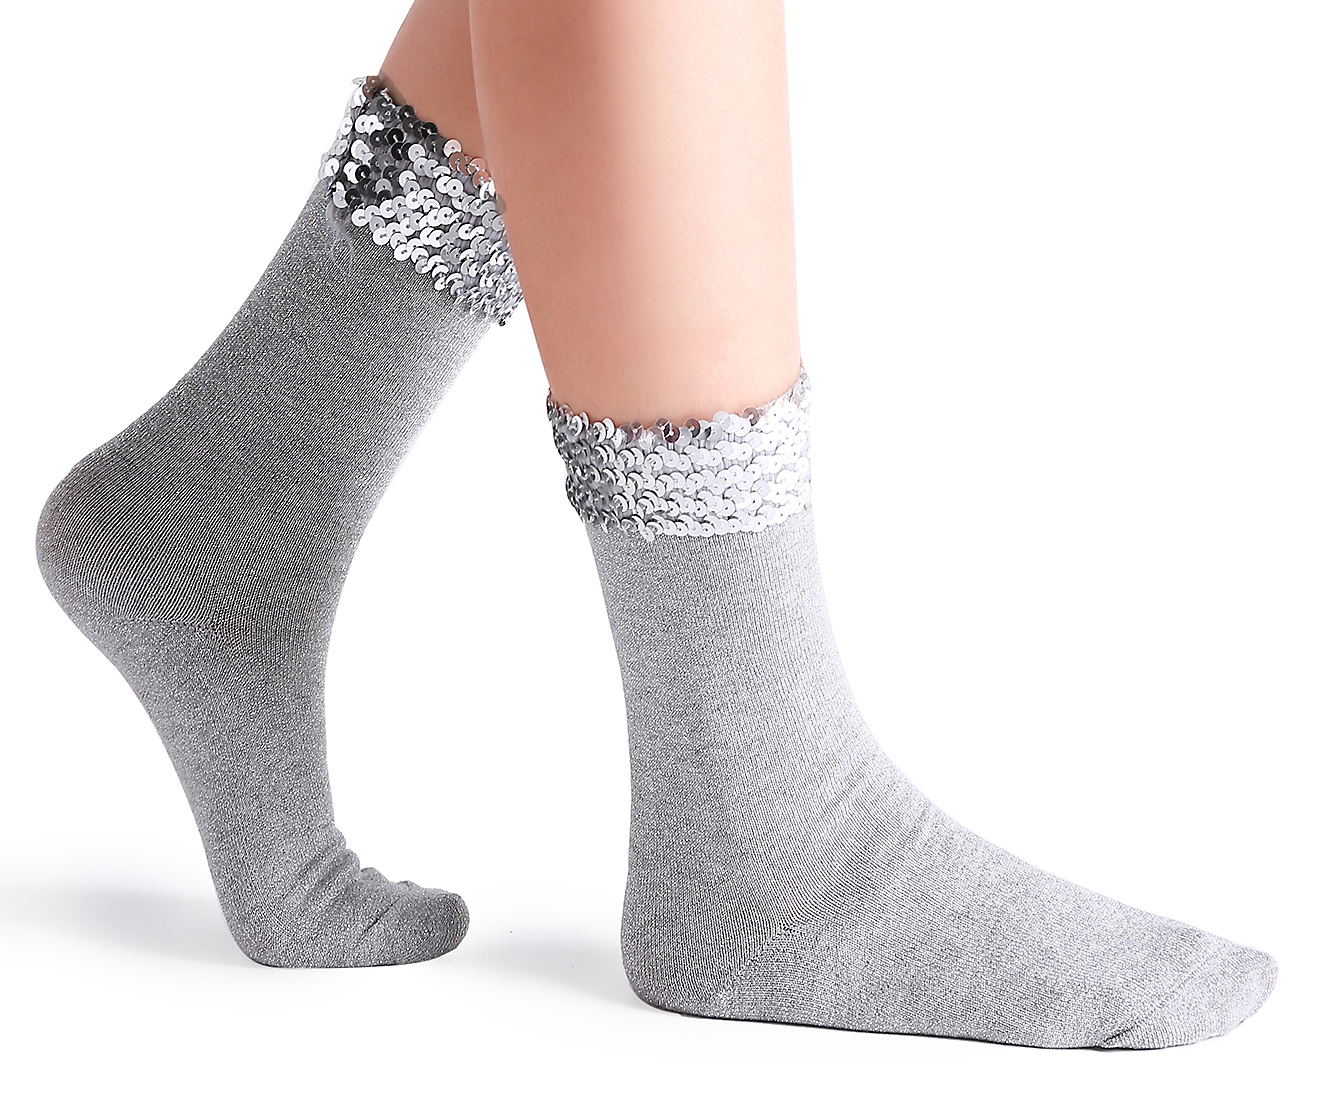 http://www.shein.com/Grey-Handmade-Sequin-Sparkly-Socks-p-335512-cat-1899.html